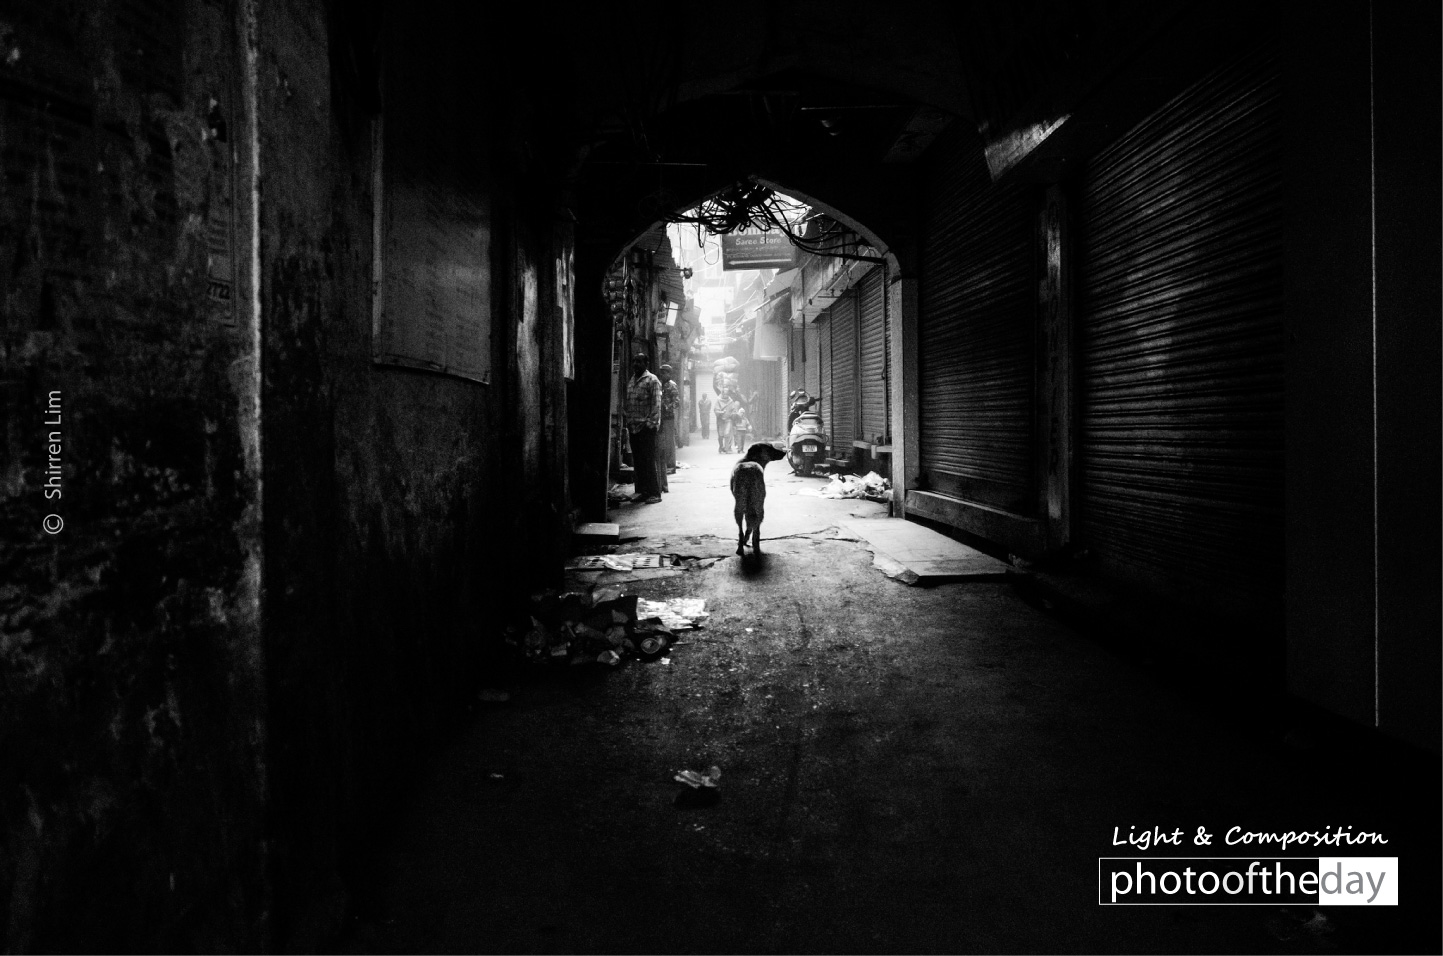 Stray Dog in an Alleyway by Shirren Lim